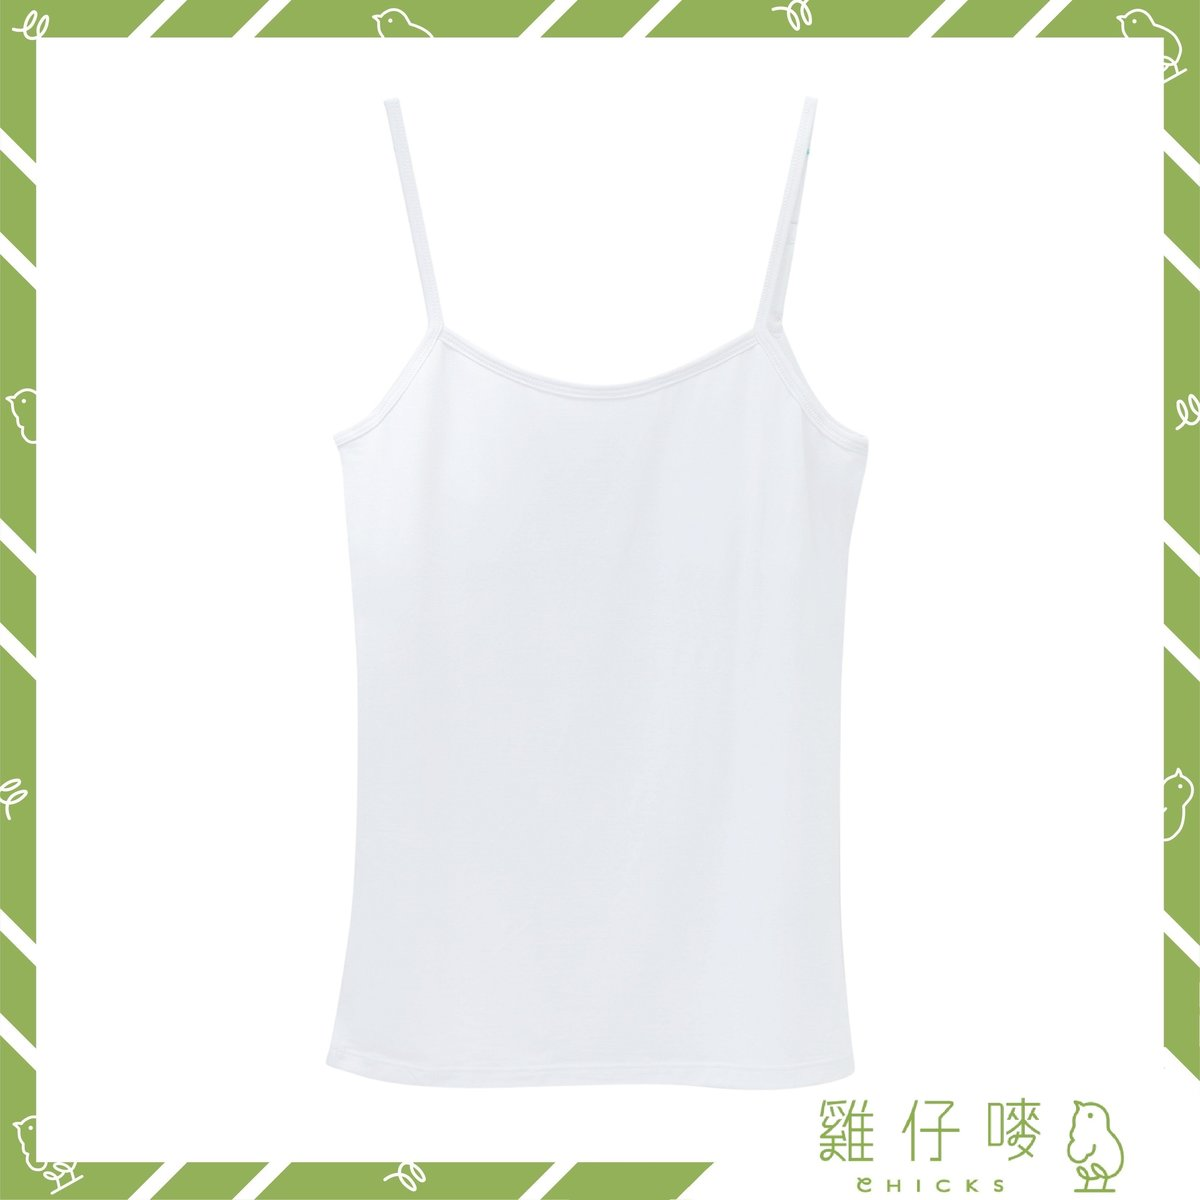 Silky Touch - Girl's Tank (w/Bra Pads) (White) (Size 140)